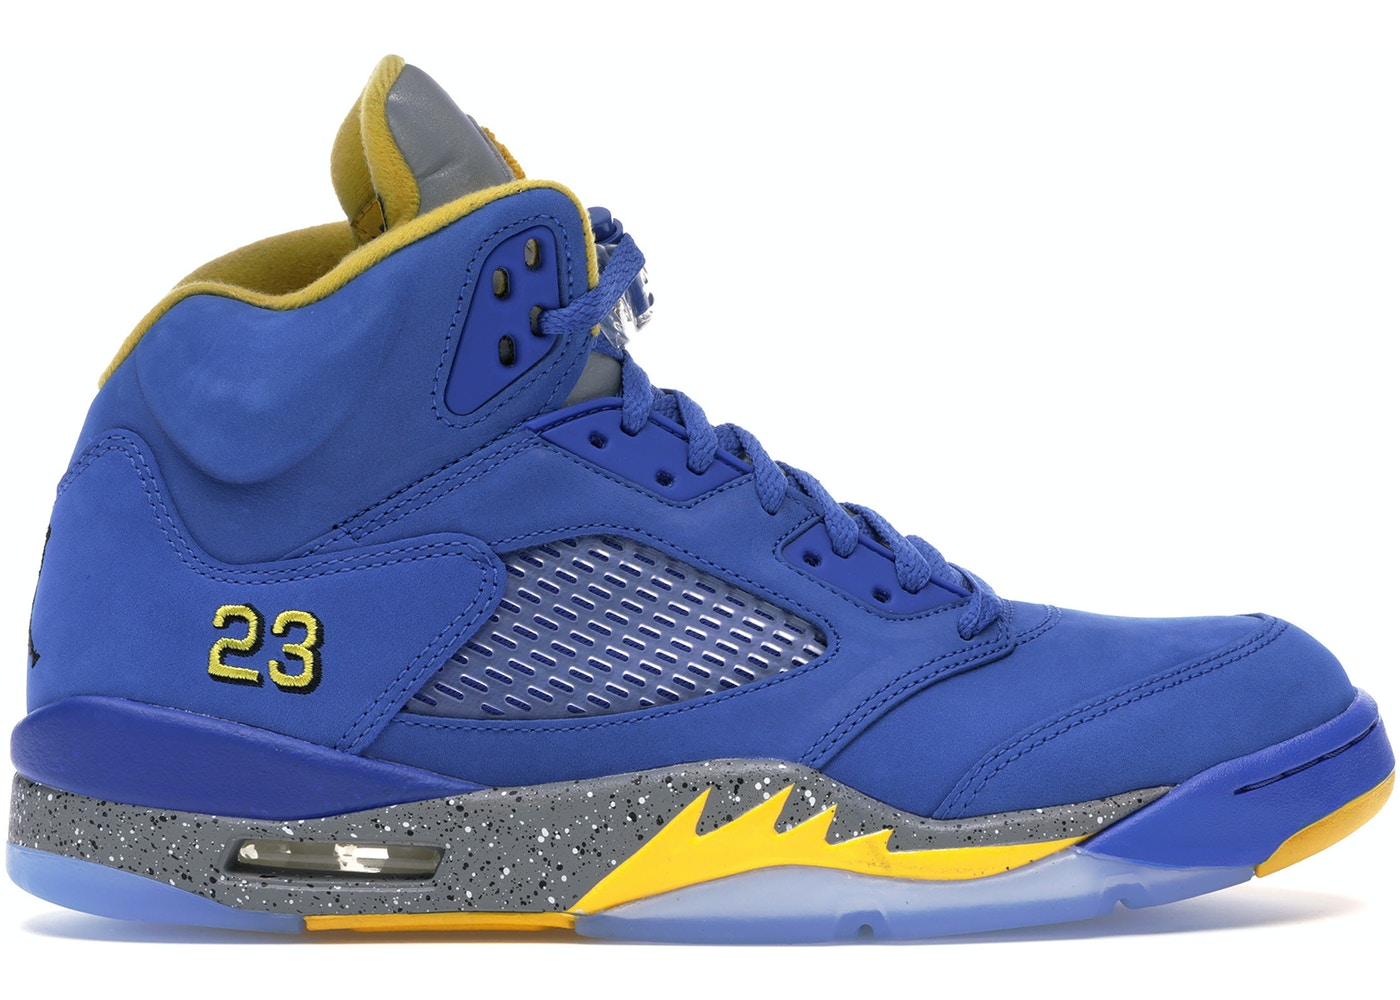 finest selection a6102 8b035 Buy Air Jordan 5 Shoes & Deadstock Sneakers